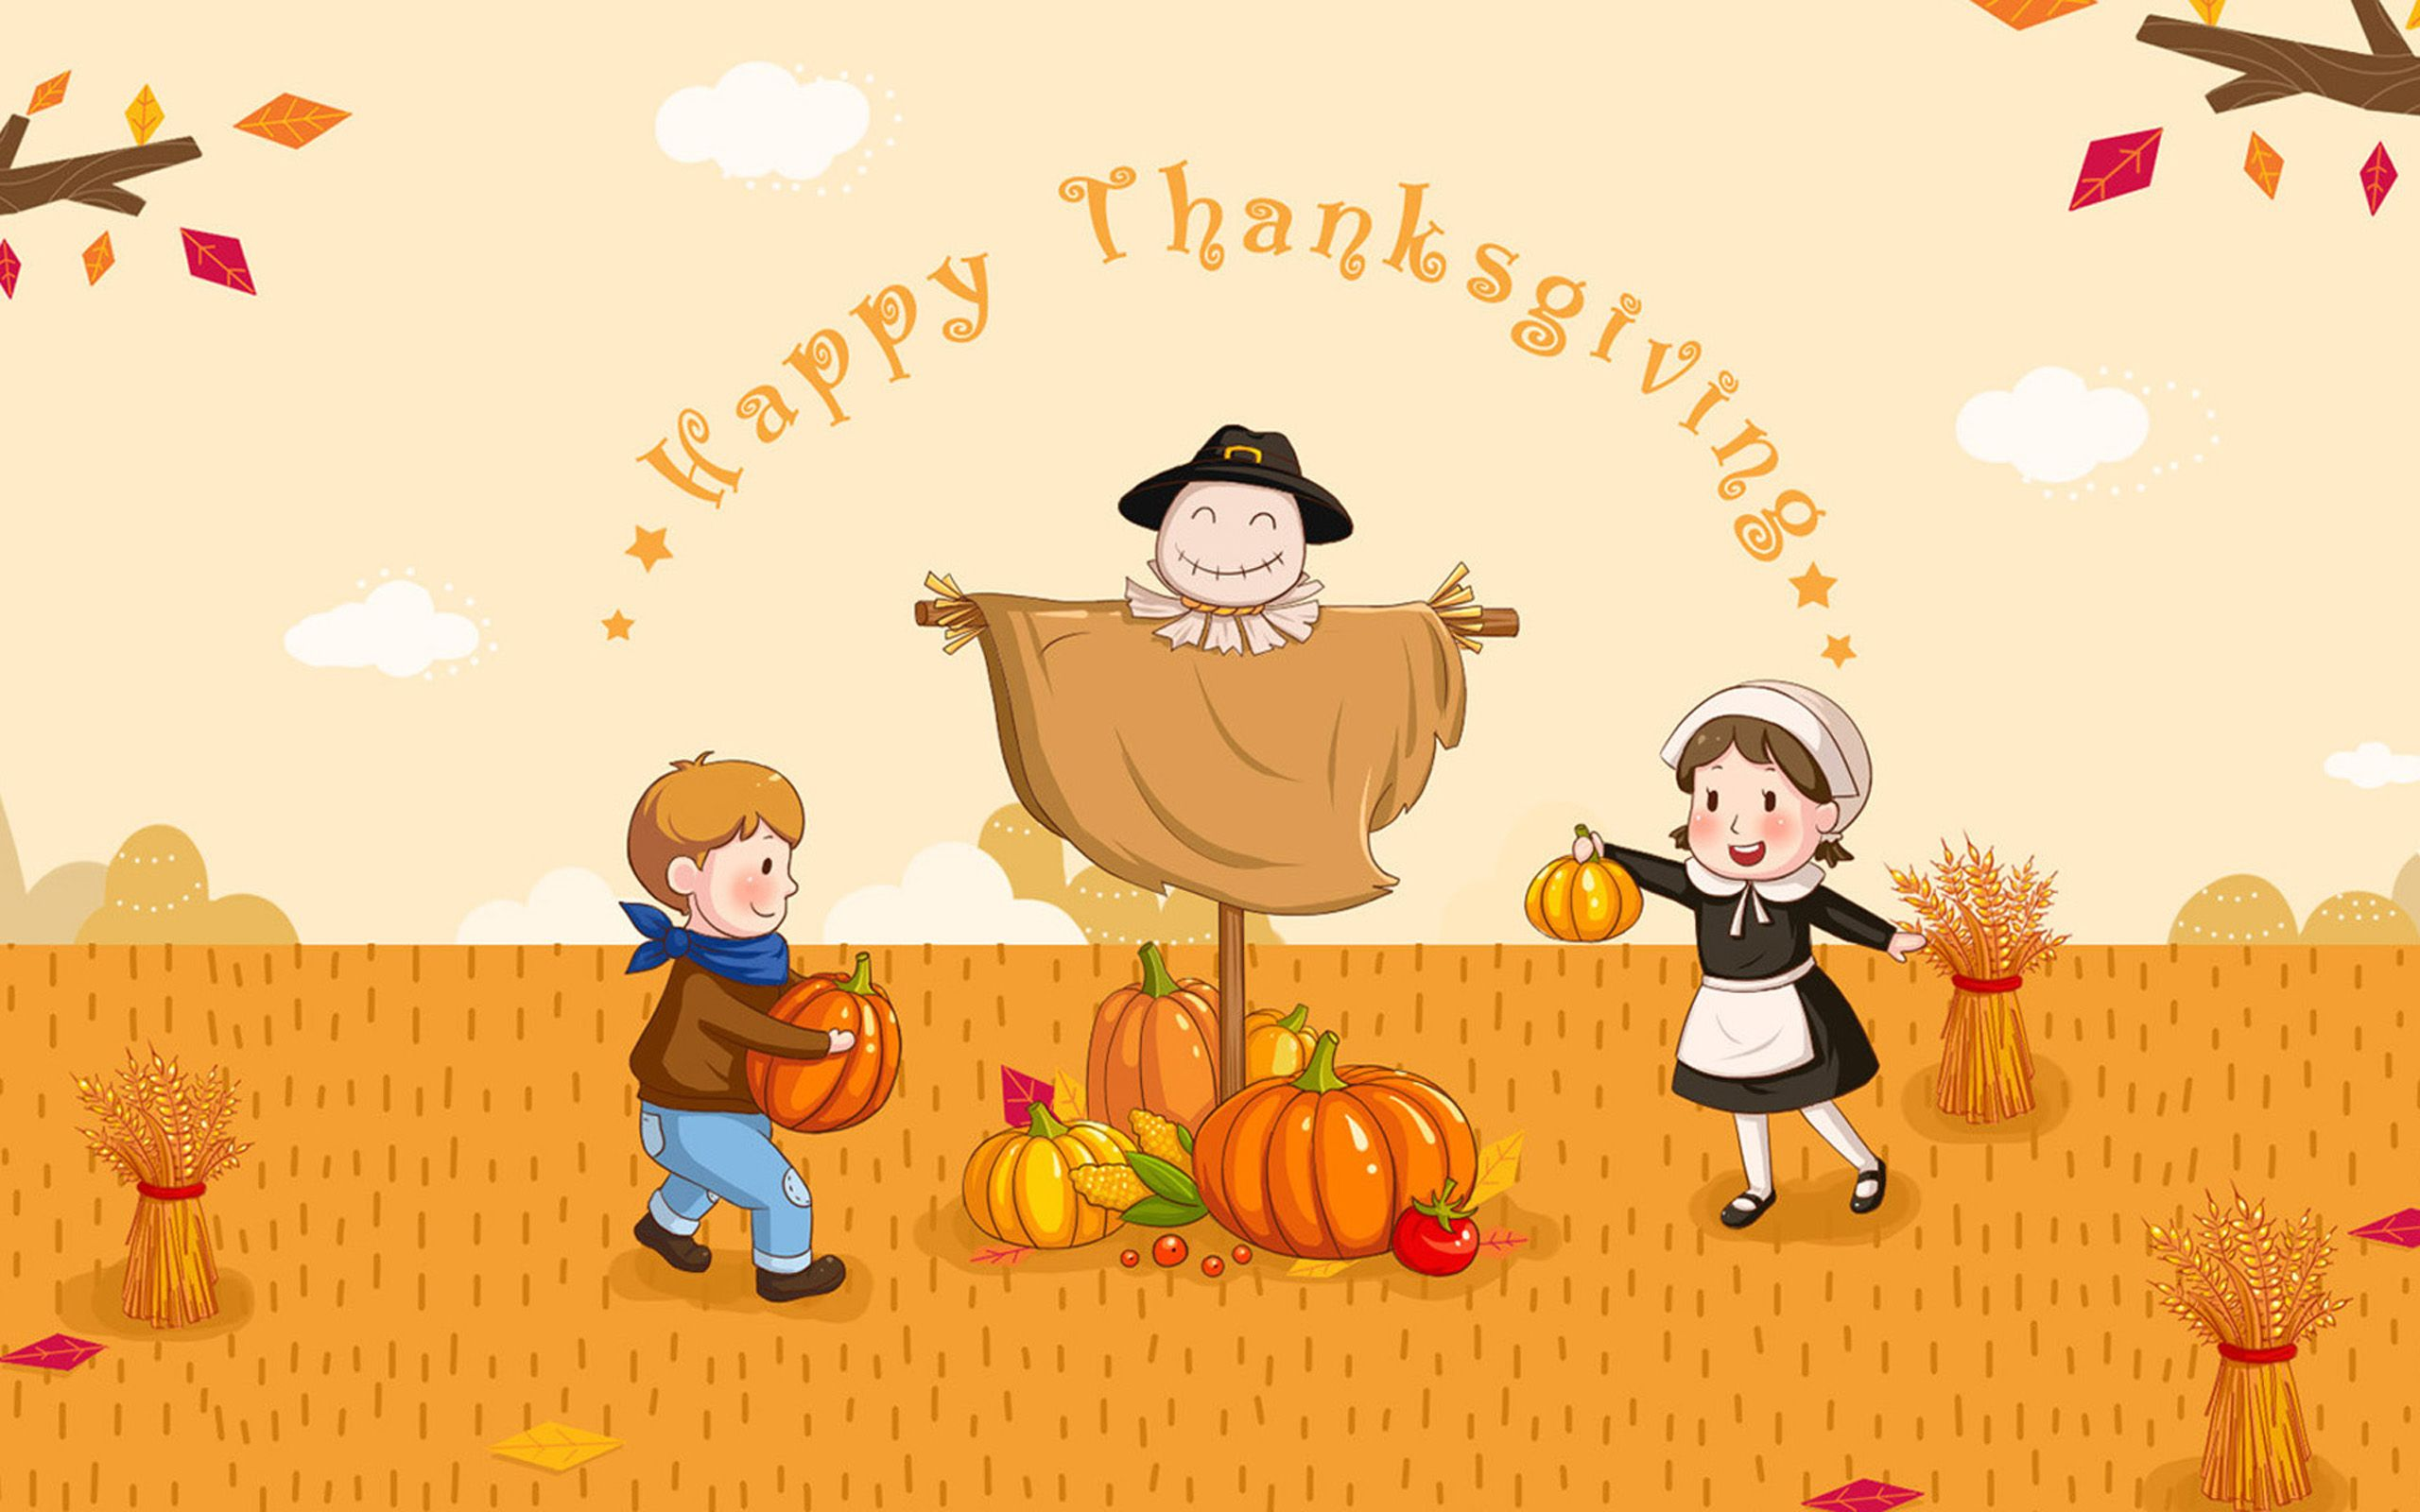 Thanksgiving Desktop Backgrounds Google Search Happy Thanksgiving Images Thanksgiving Wallpaper Funny Thanksgiving